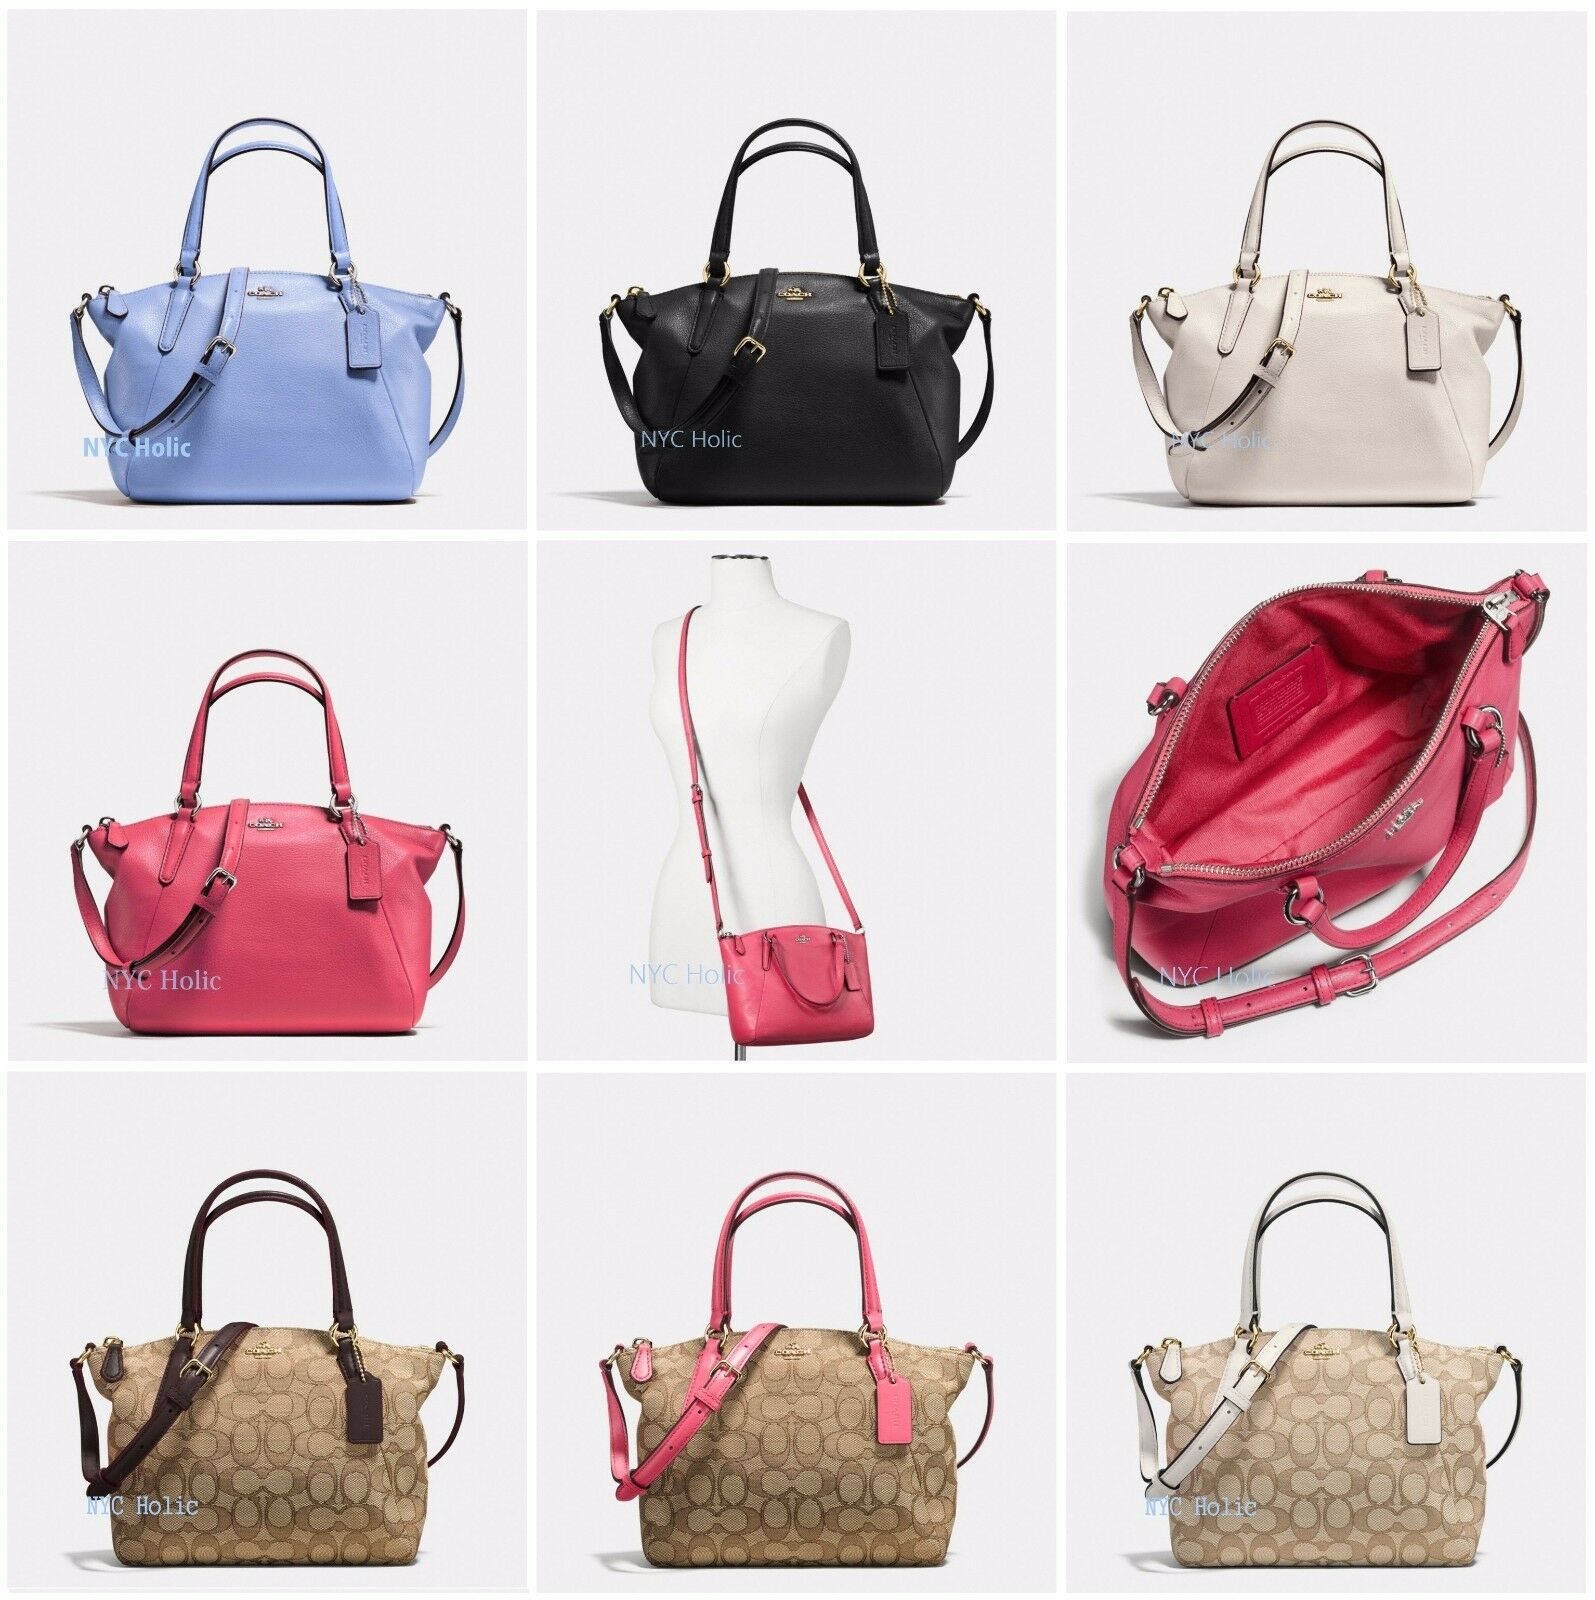 2c411f0a6244 ... purchase new coach f57563 f57830 mini kelsey satchel in pebble leather  781c2 7336b